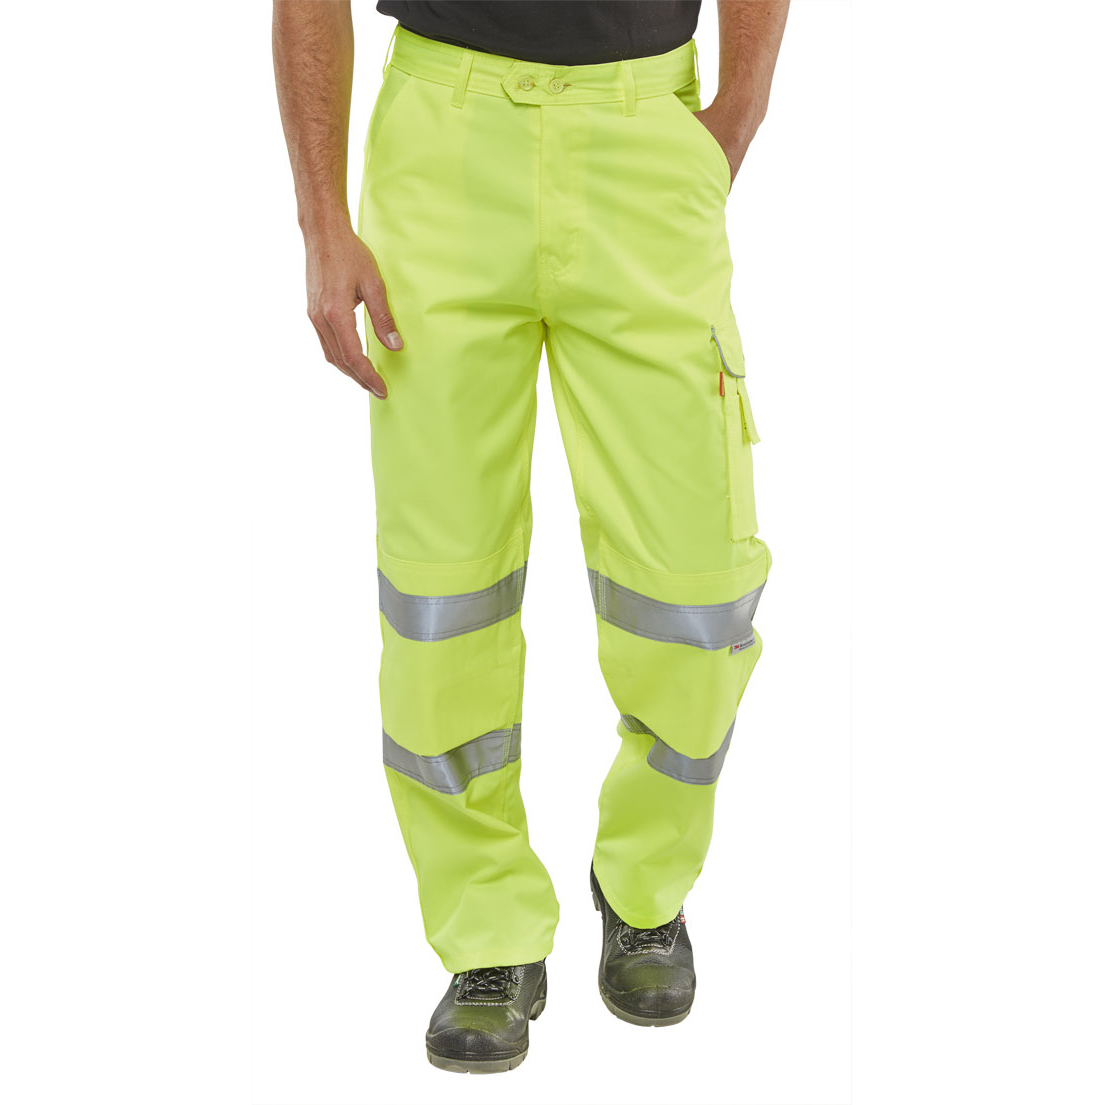 BSeen Trousers Polycotton Hi-Vis EN471 Saturn Yellow 40 Ref PCTENSY40 *Up to 3 Day Leadtime*